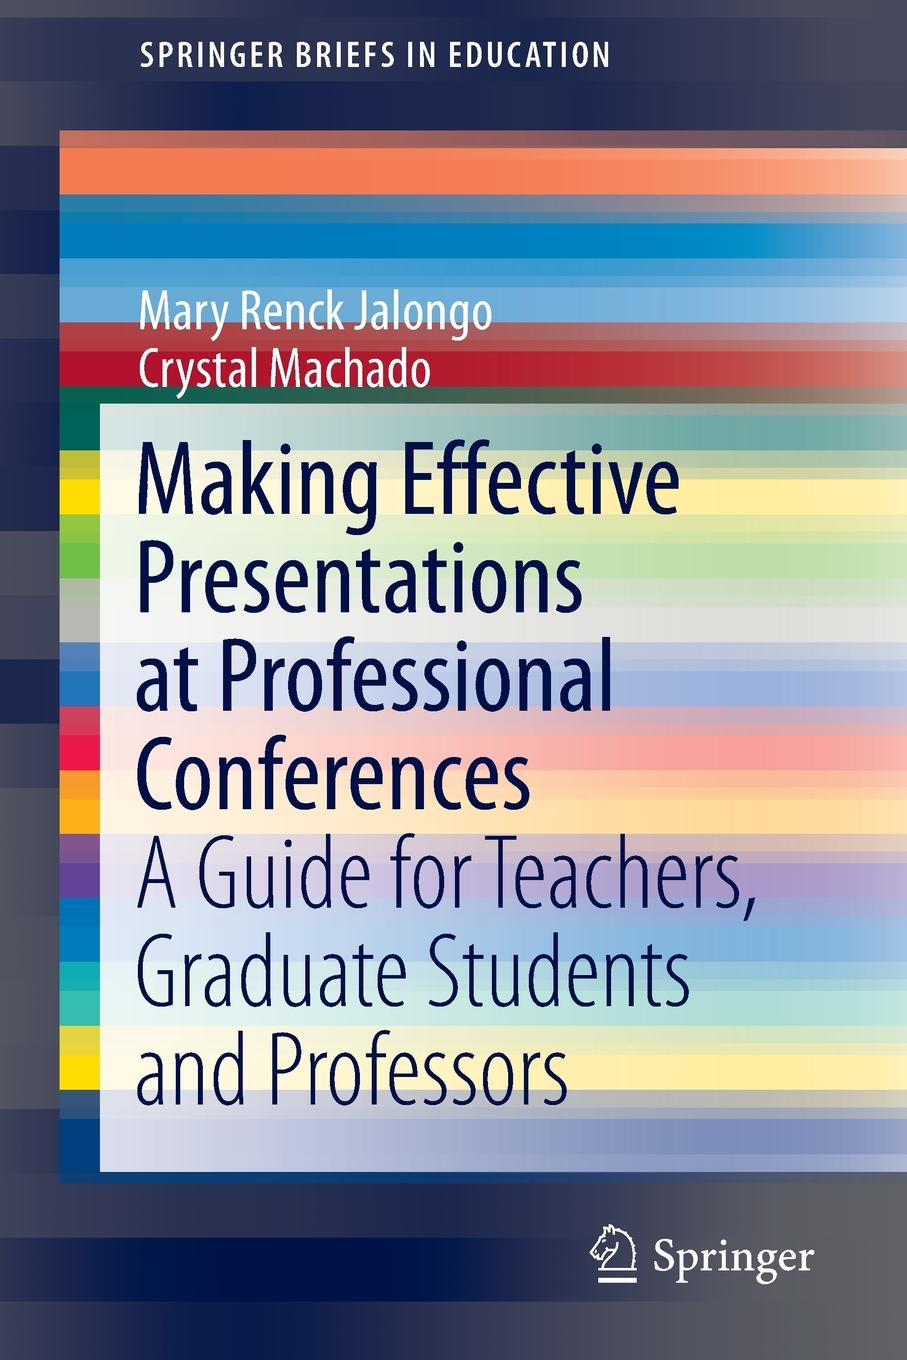 Mary Renck Jalongo, Crystal Machado Making Effective Presentations at Professional Conferences. A Guide for Teachers, Graduate Students and Professors sundar christopher a navigating graduate school and beyond a career guide for graduate students and a must read for every advisor